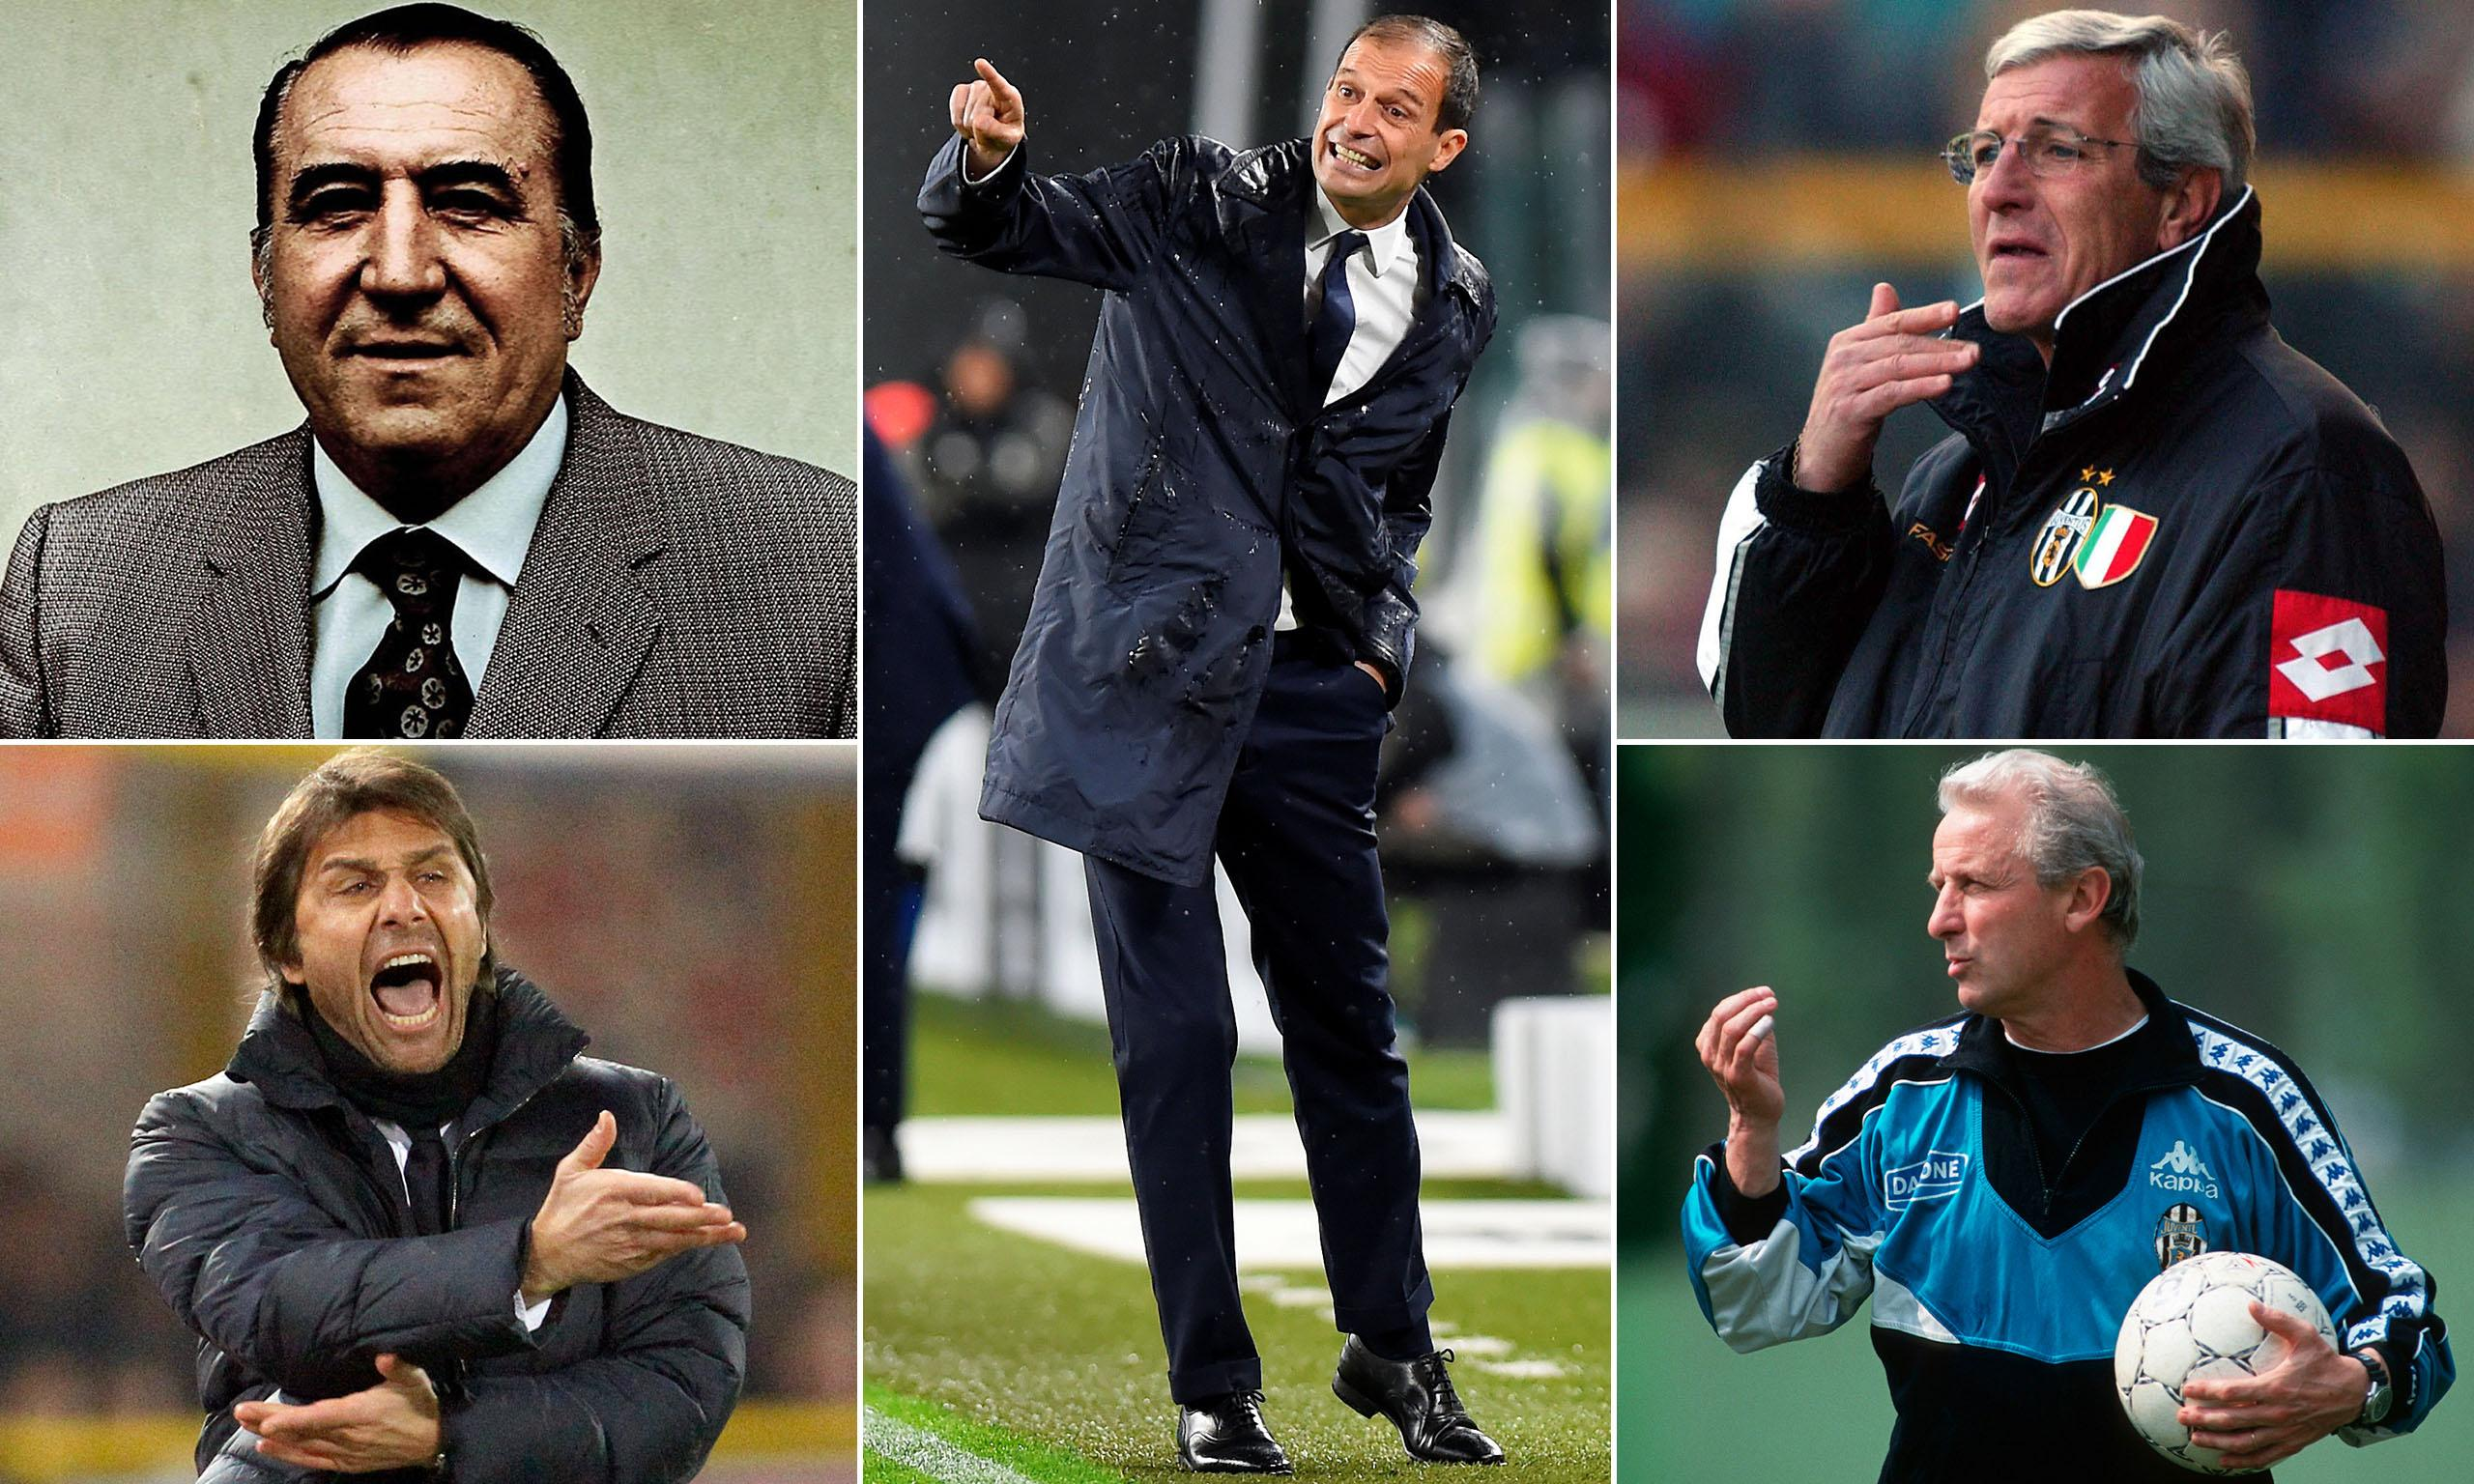 Massimiliano Allegri leaves Juventus as one of their great managers